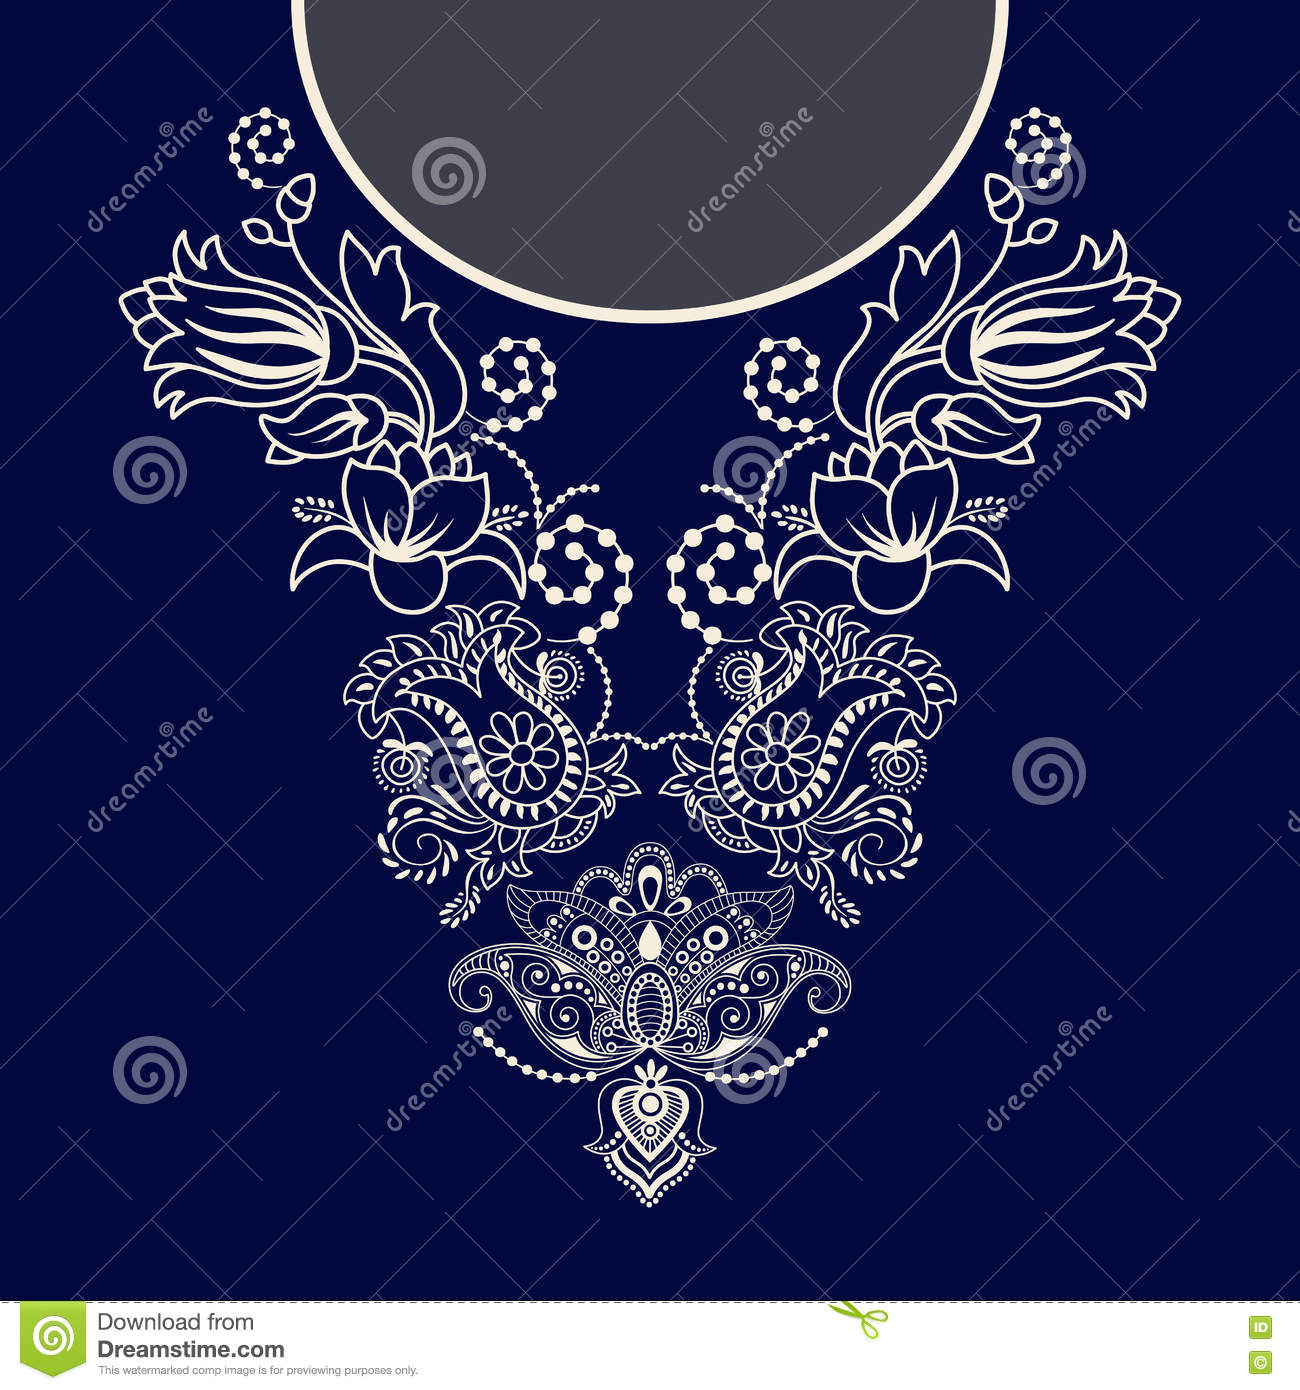 Vector design for collar shirts, blouses